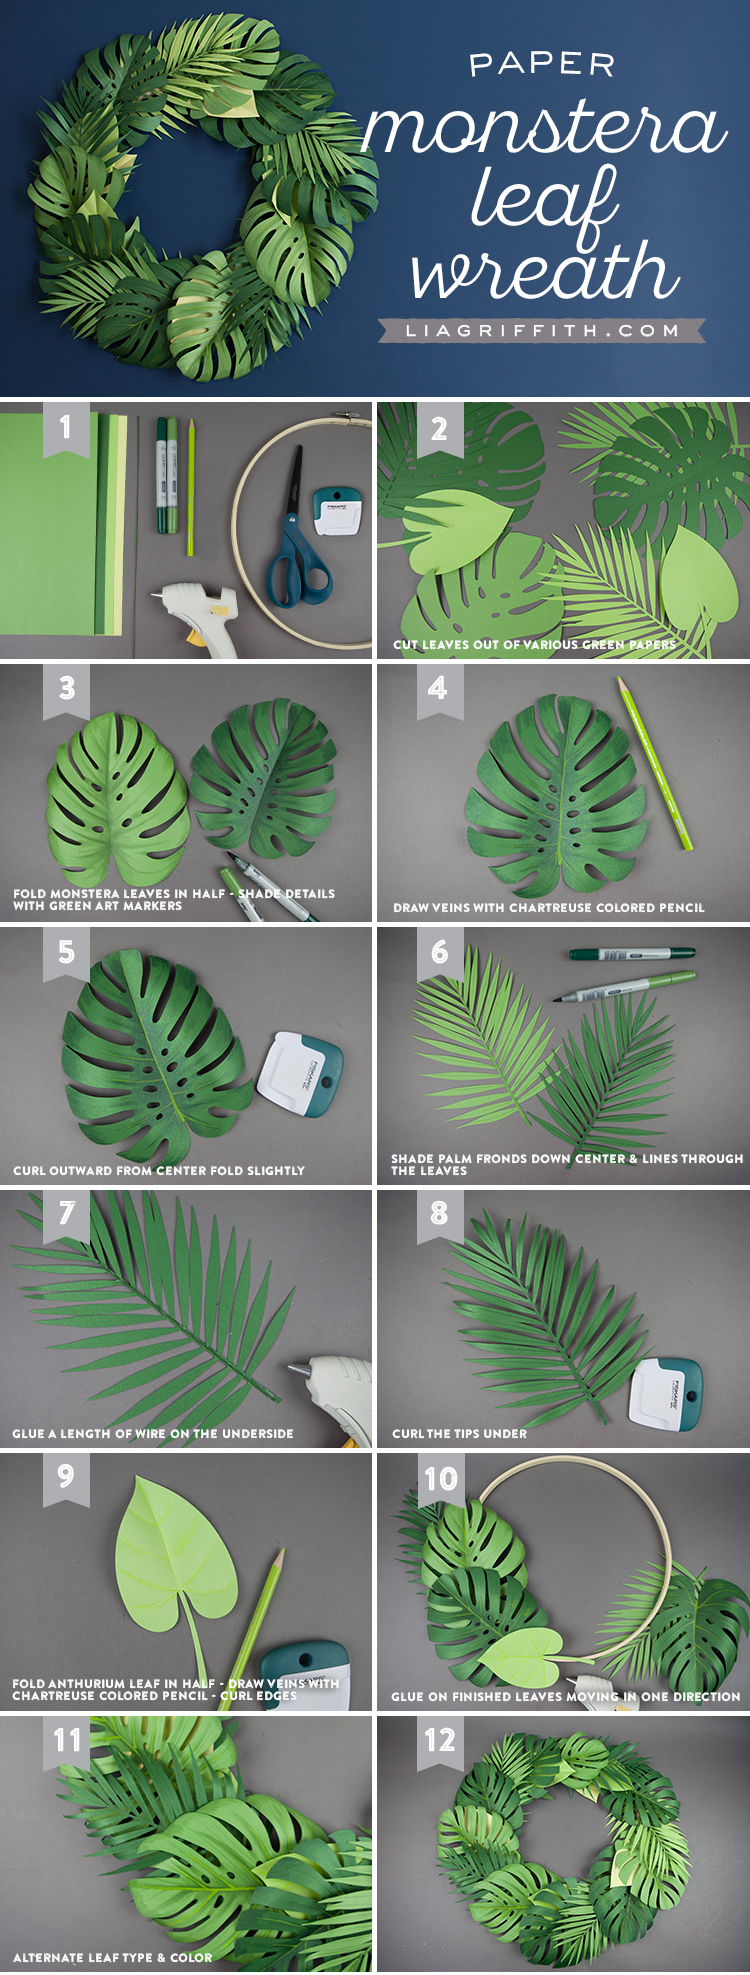 Paper Monstera Leaf Wreath Infographic